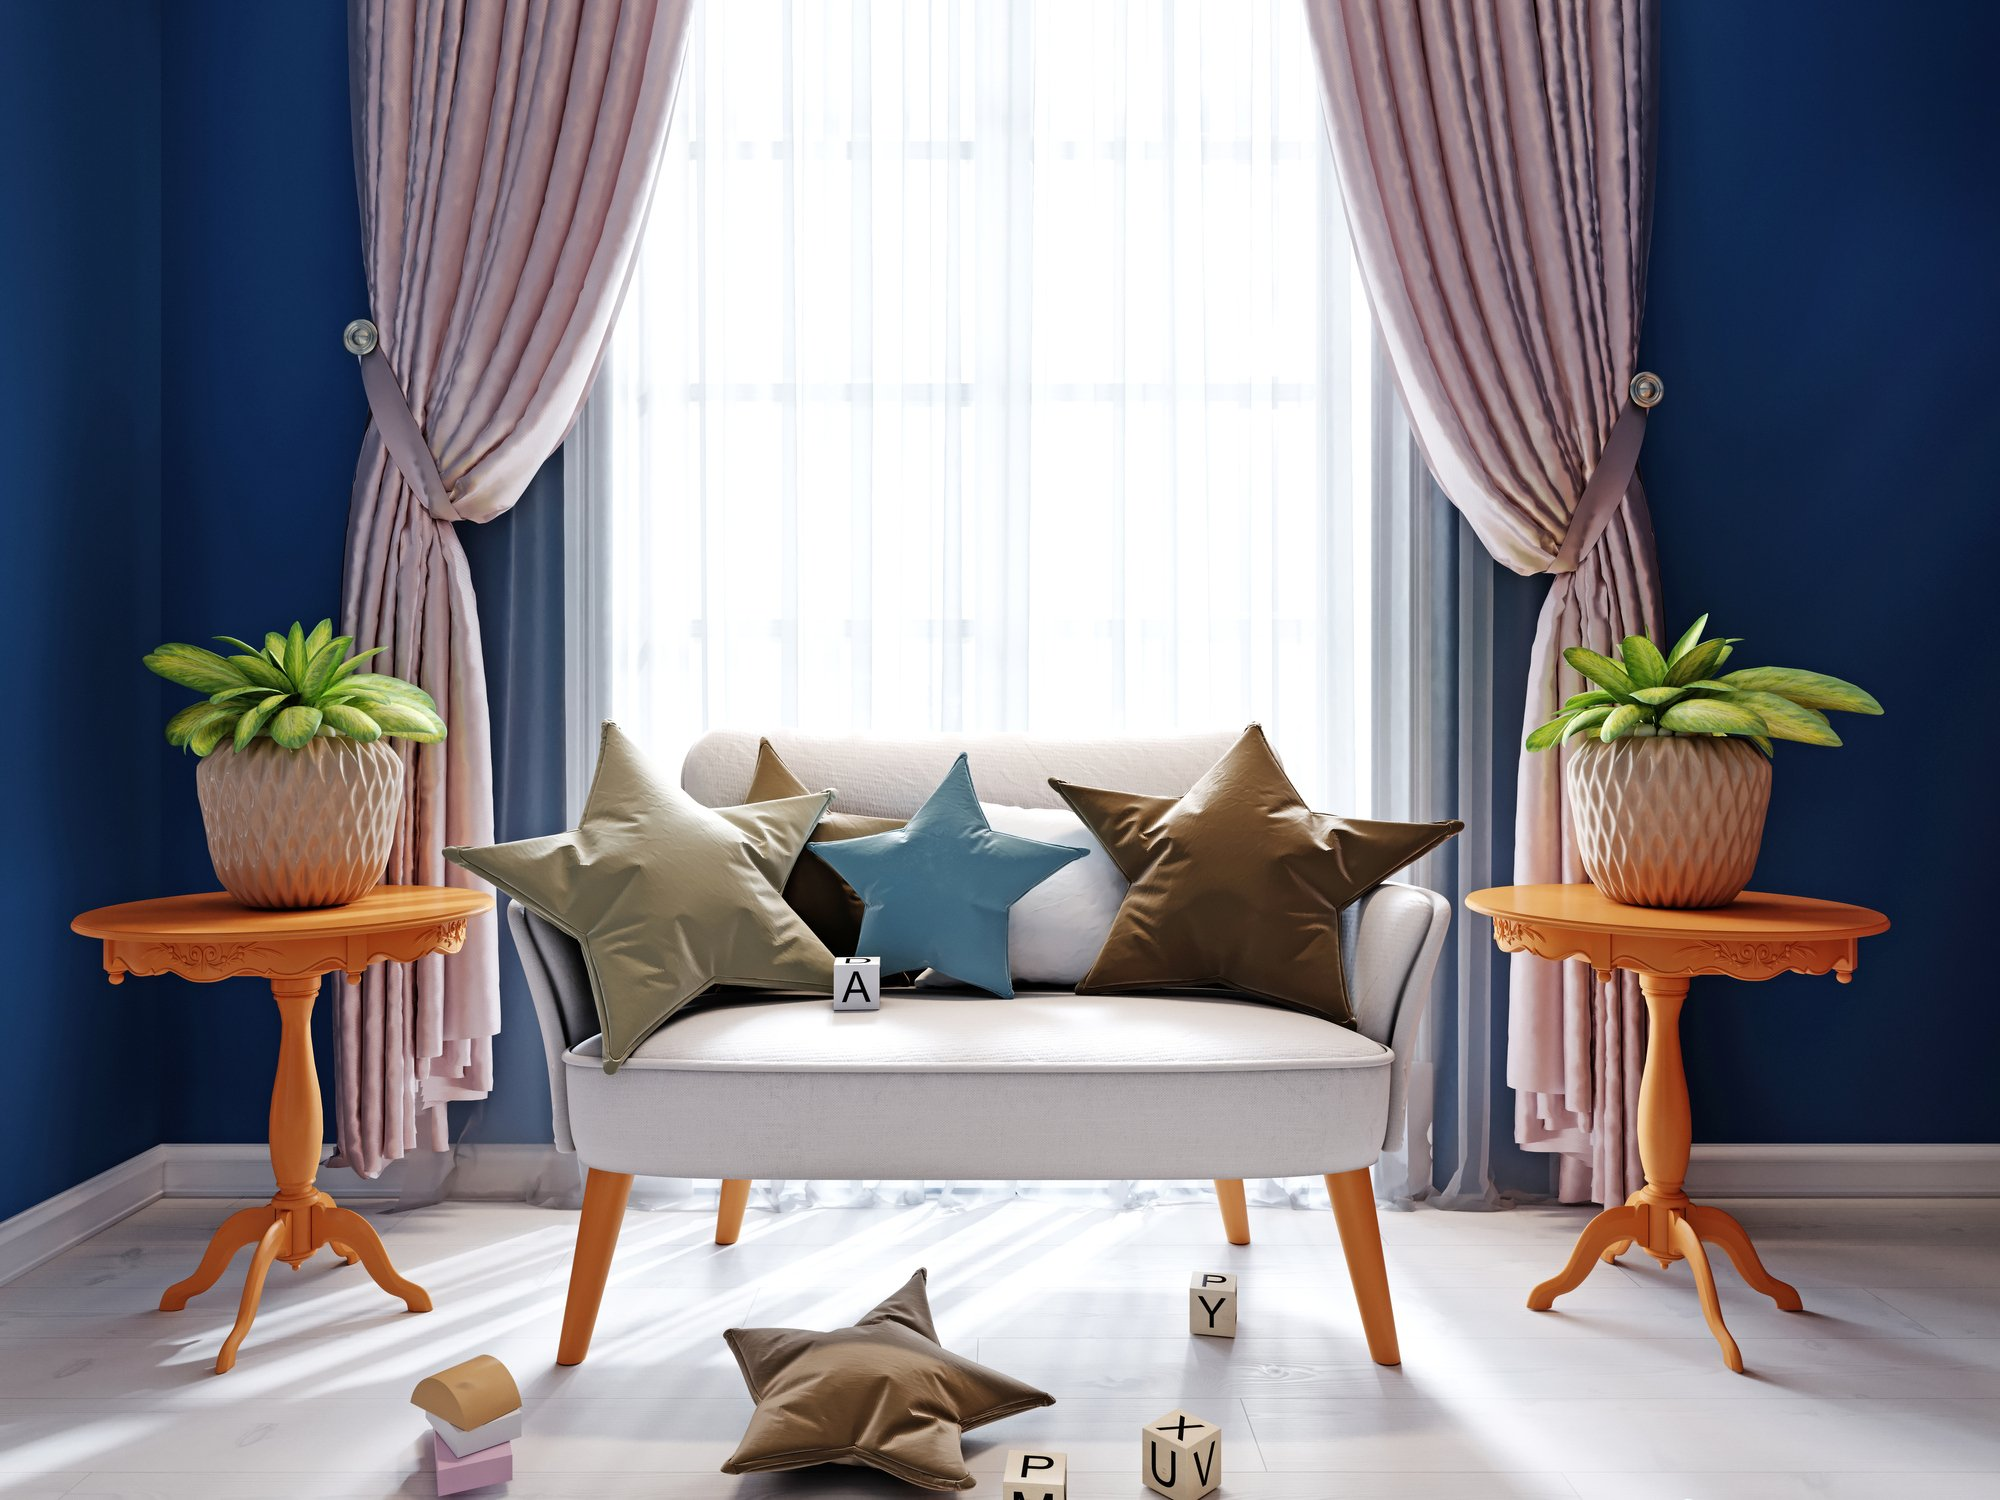 Designer sofa with pillows and decor near the window in the children's room. Curtains, tables with a flowerpot.